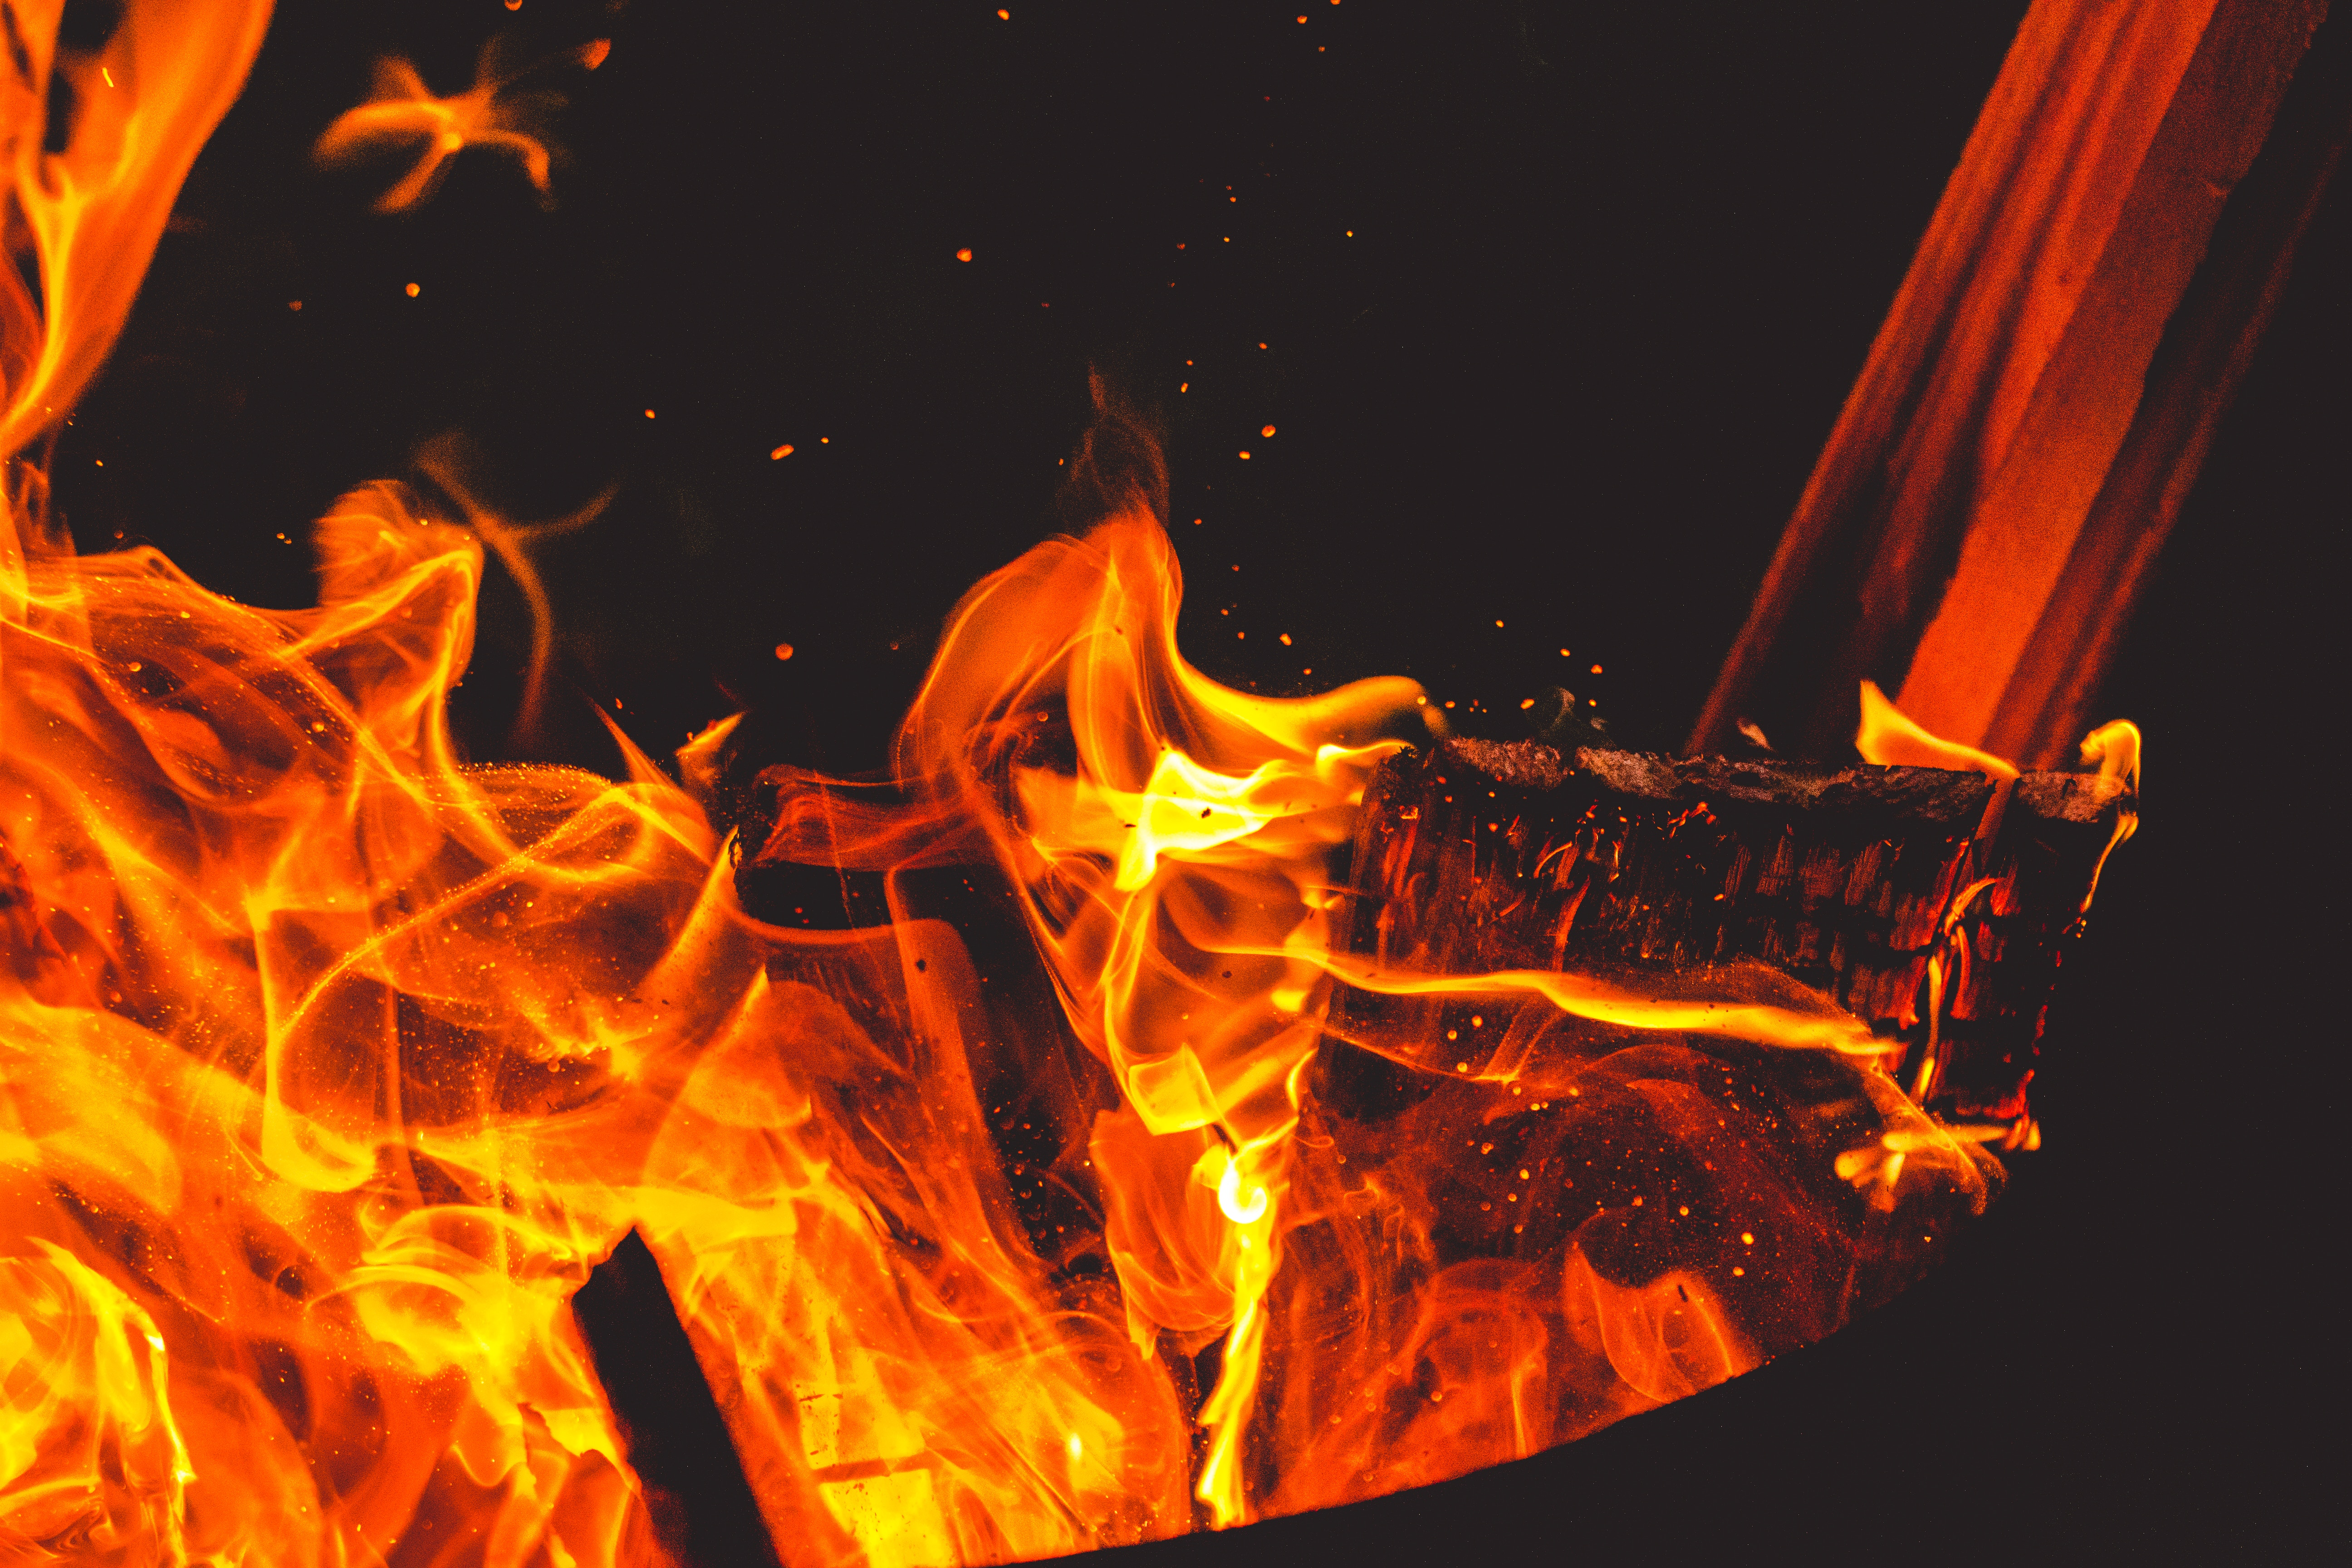 63434 Screensavers and Wallpapers Bonfire for phone. Download Fire, Bonfire, Flame, Sparks, Miscellanea, Miscellaneous, Firewood pictures for free